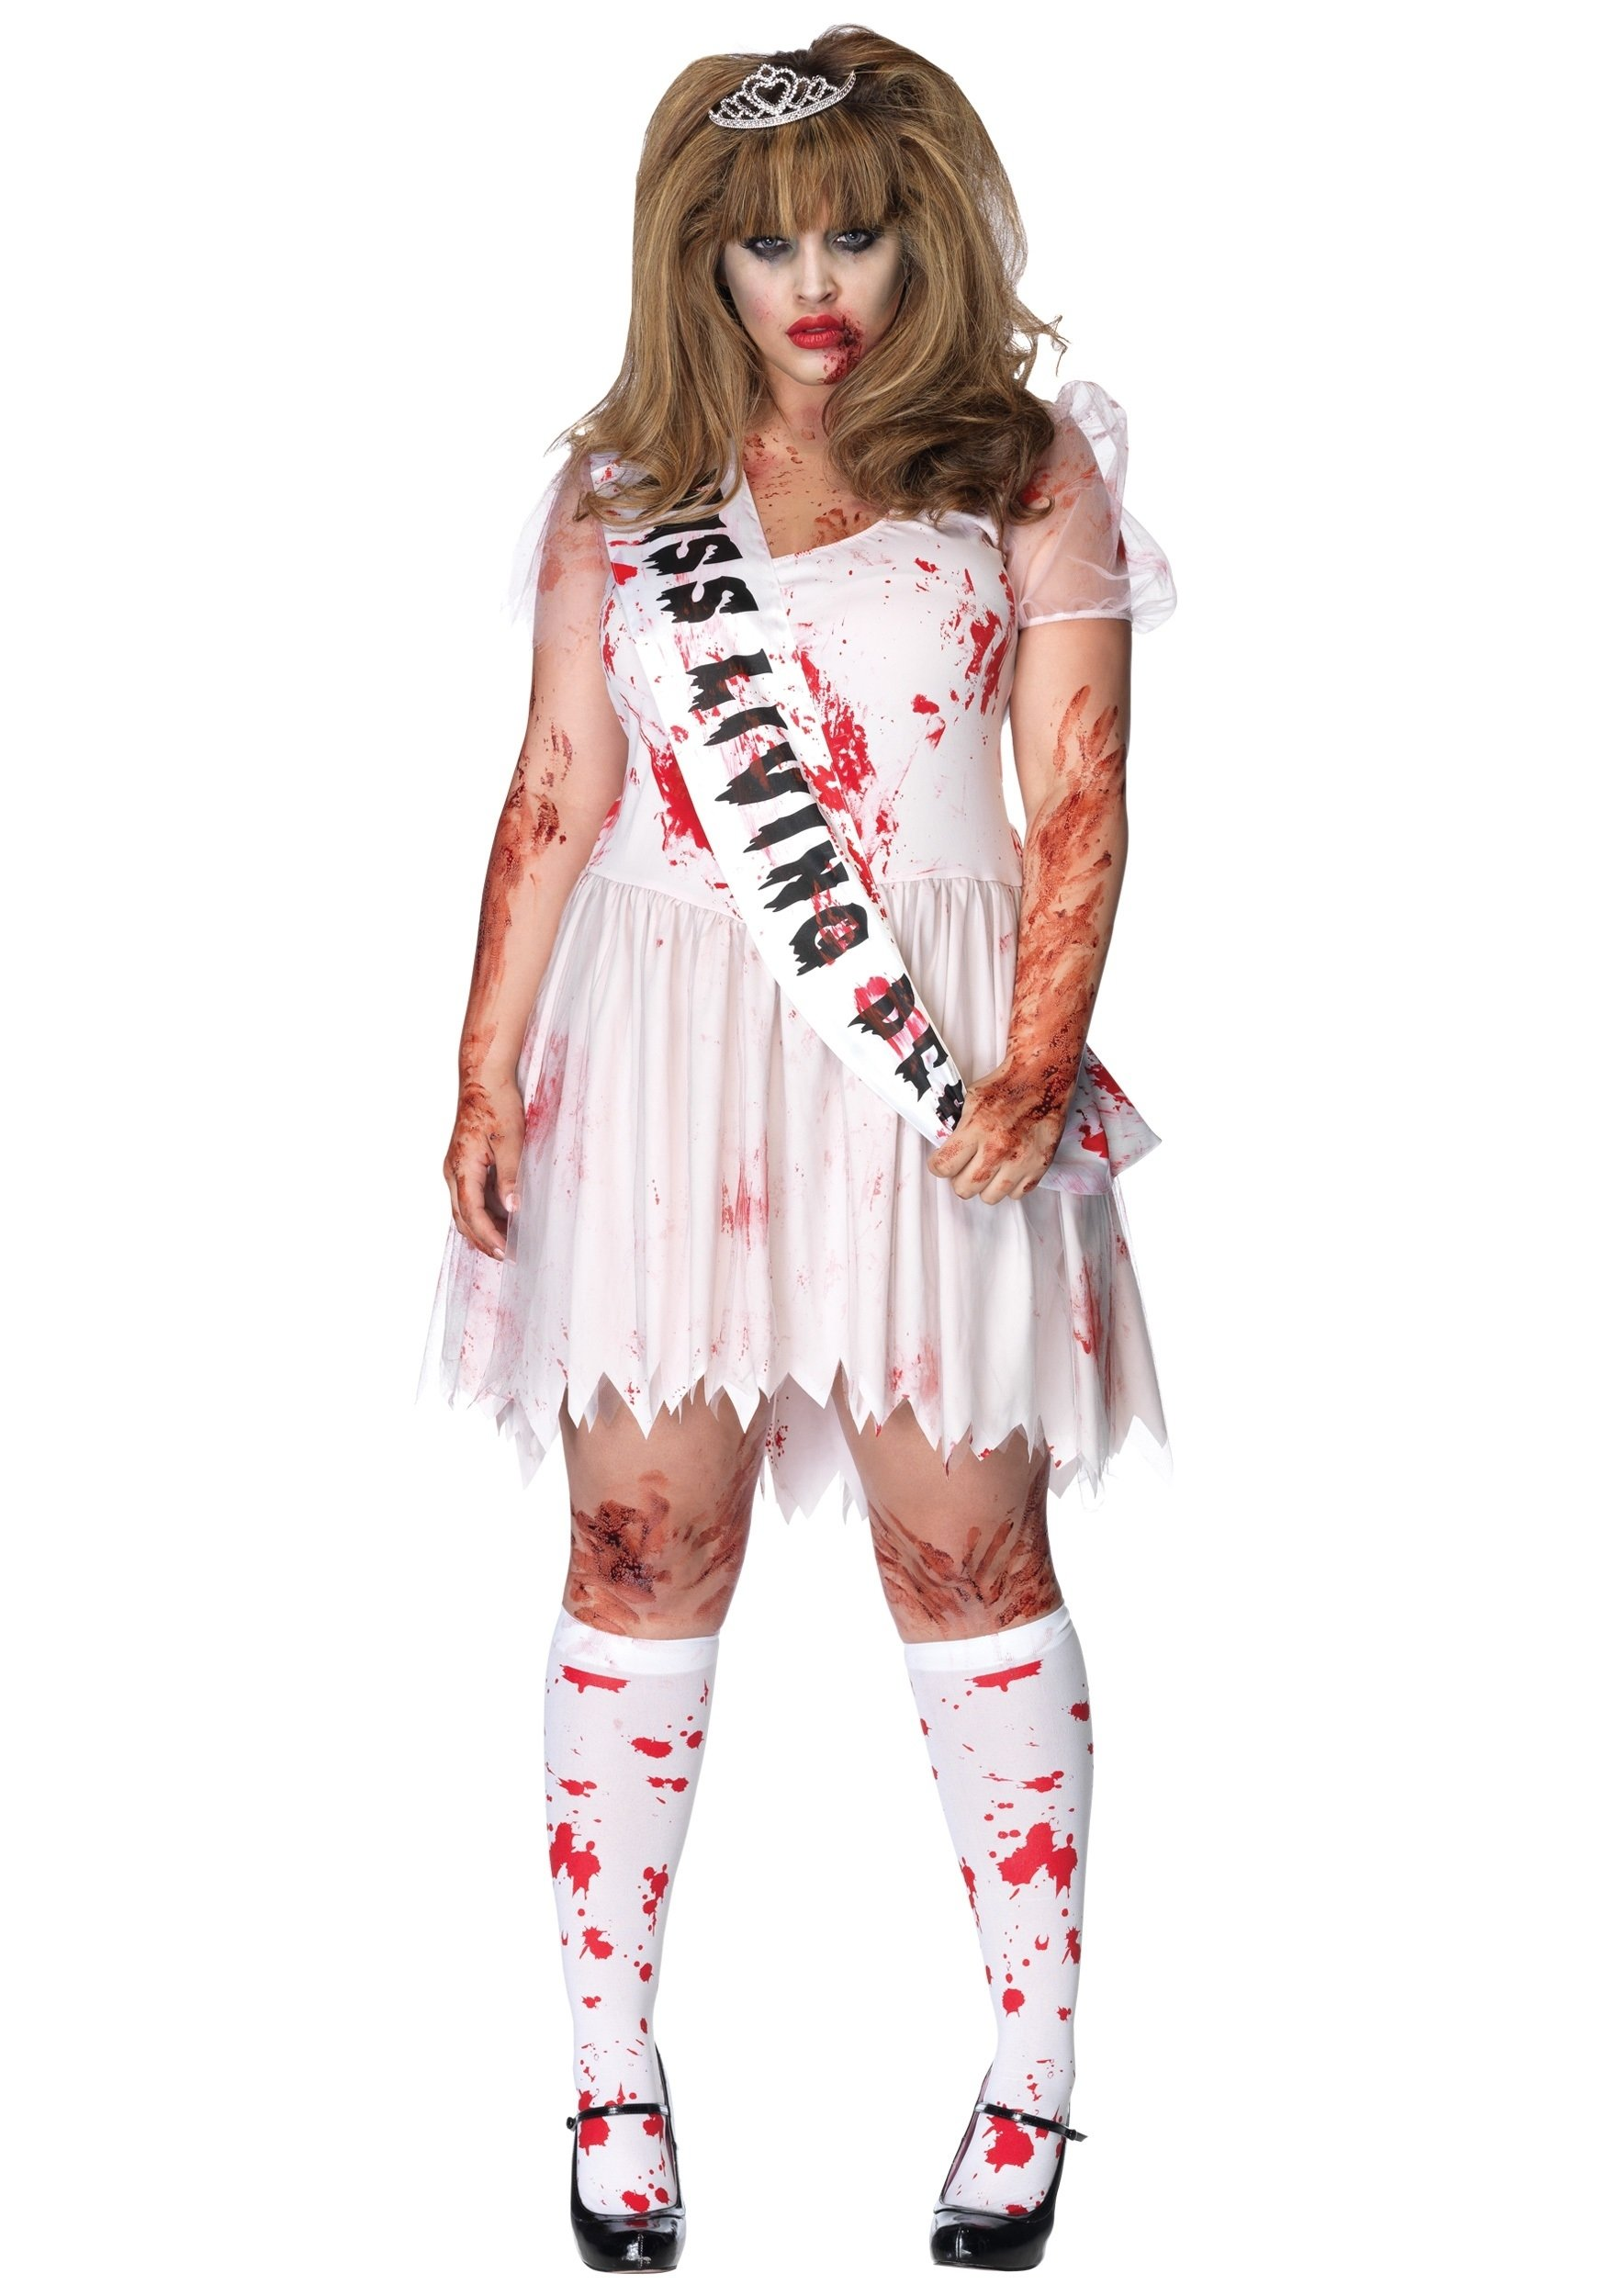 10 Amazing Zombie Costume Ideas For Girls plus size zombie prom queen costume